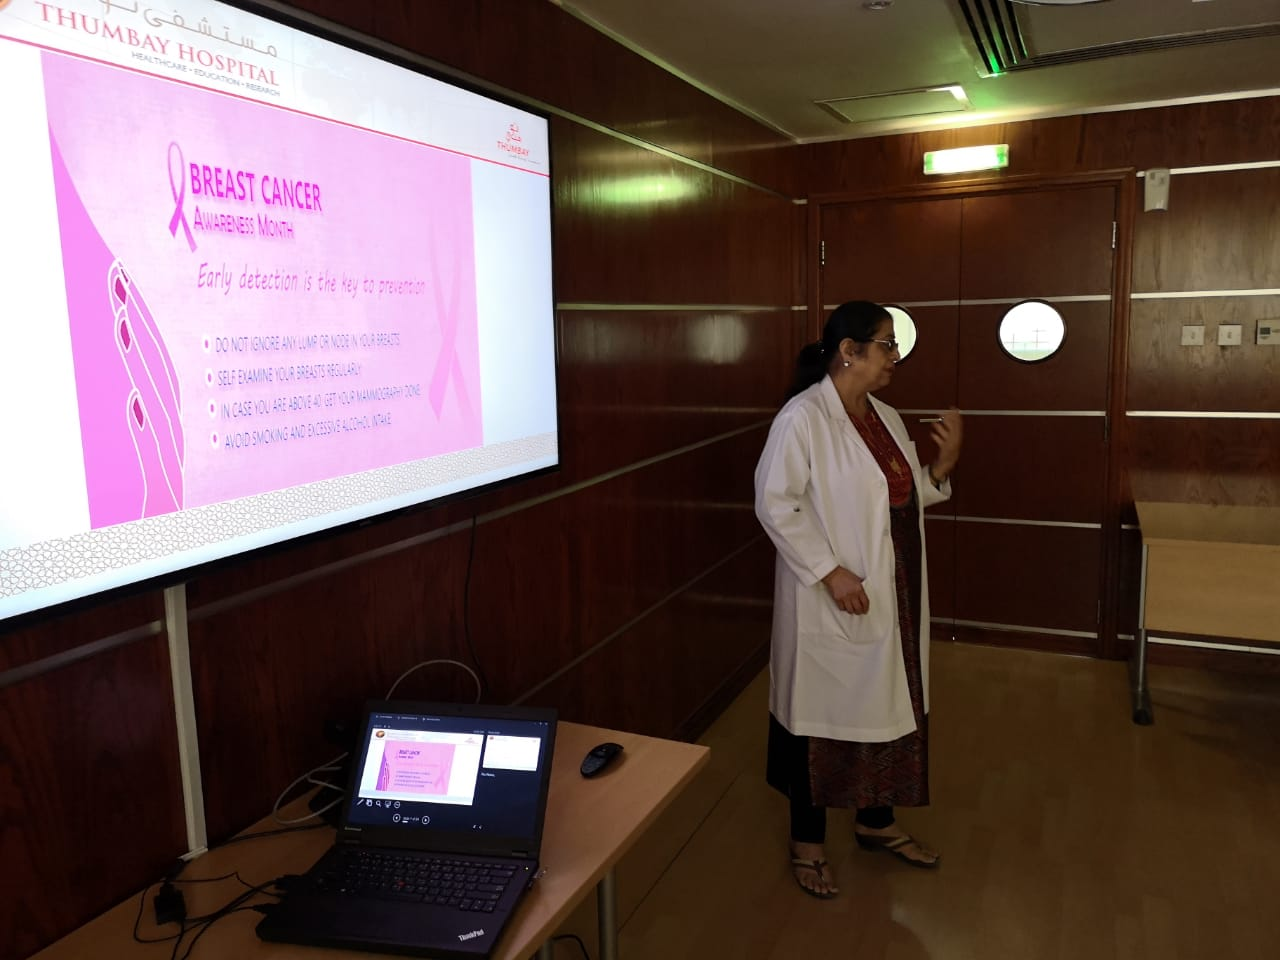 Thumbay Hospital Day Care, University City Road Muwailah-Sharjah Organized Breast Cancer Awareness Event in GECO(A part of Al Batha Group)